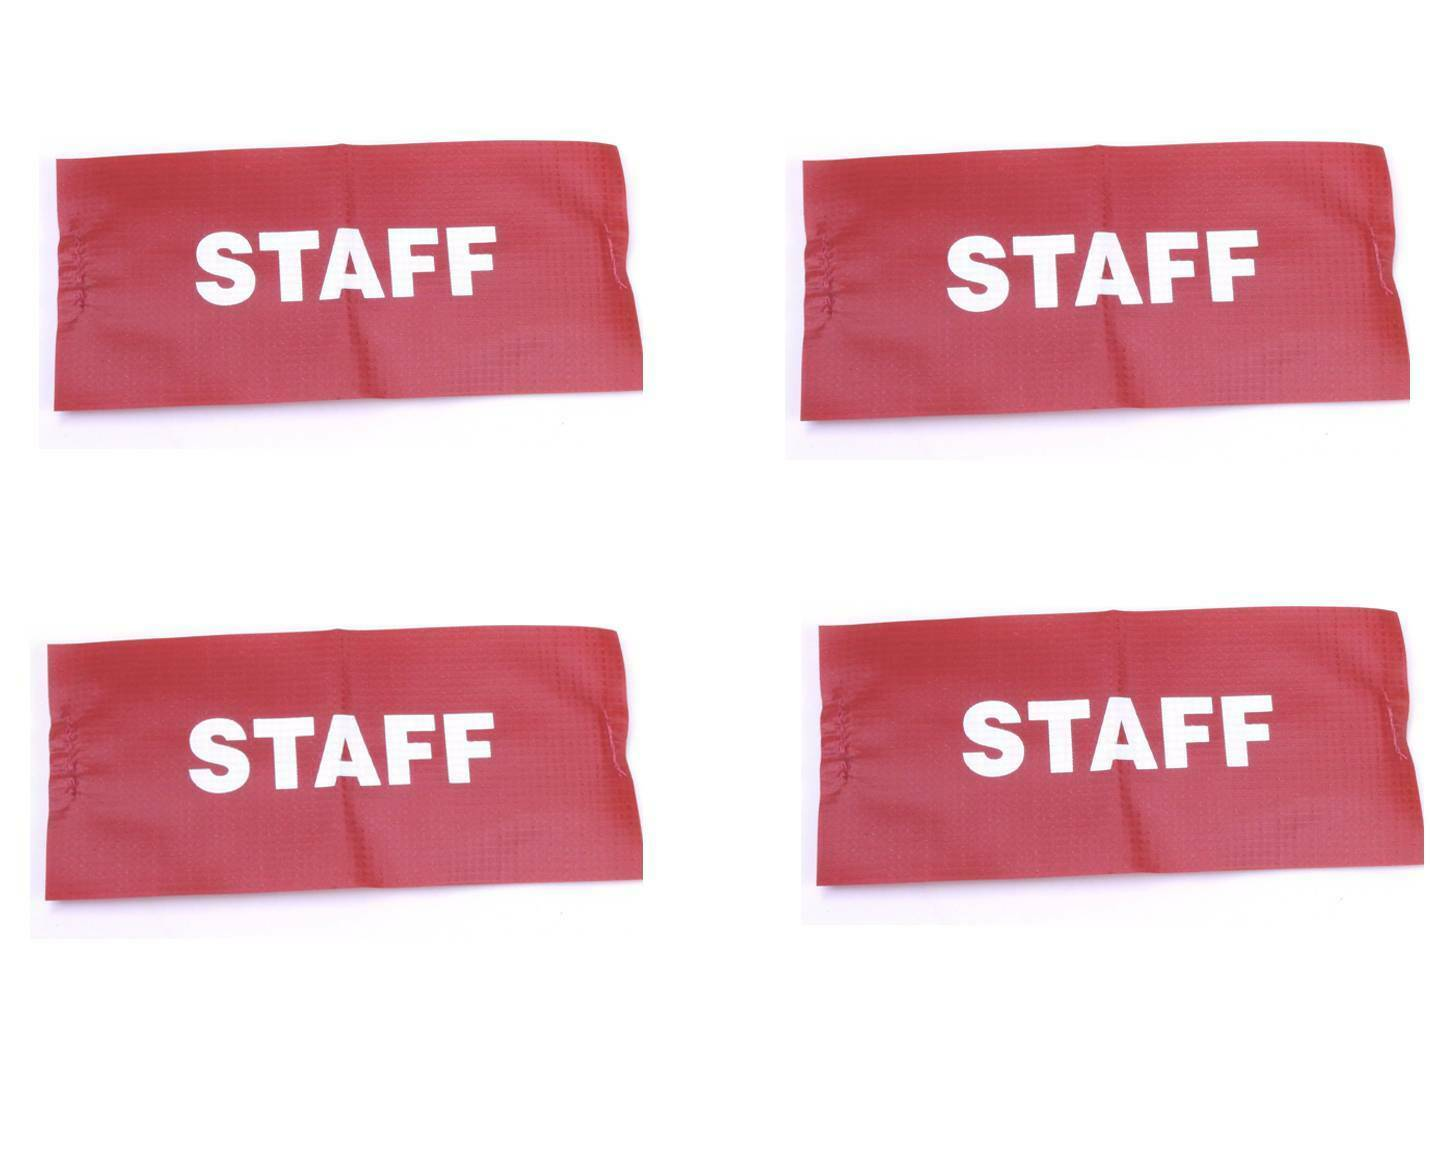 Vinyl/Nylon Armbands Printed STAFF